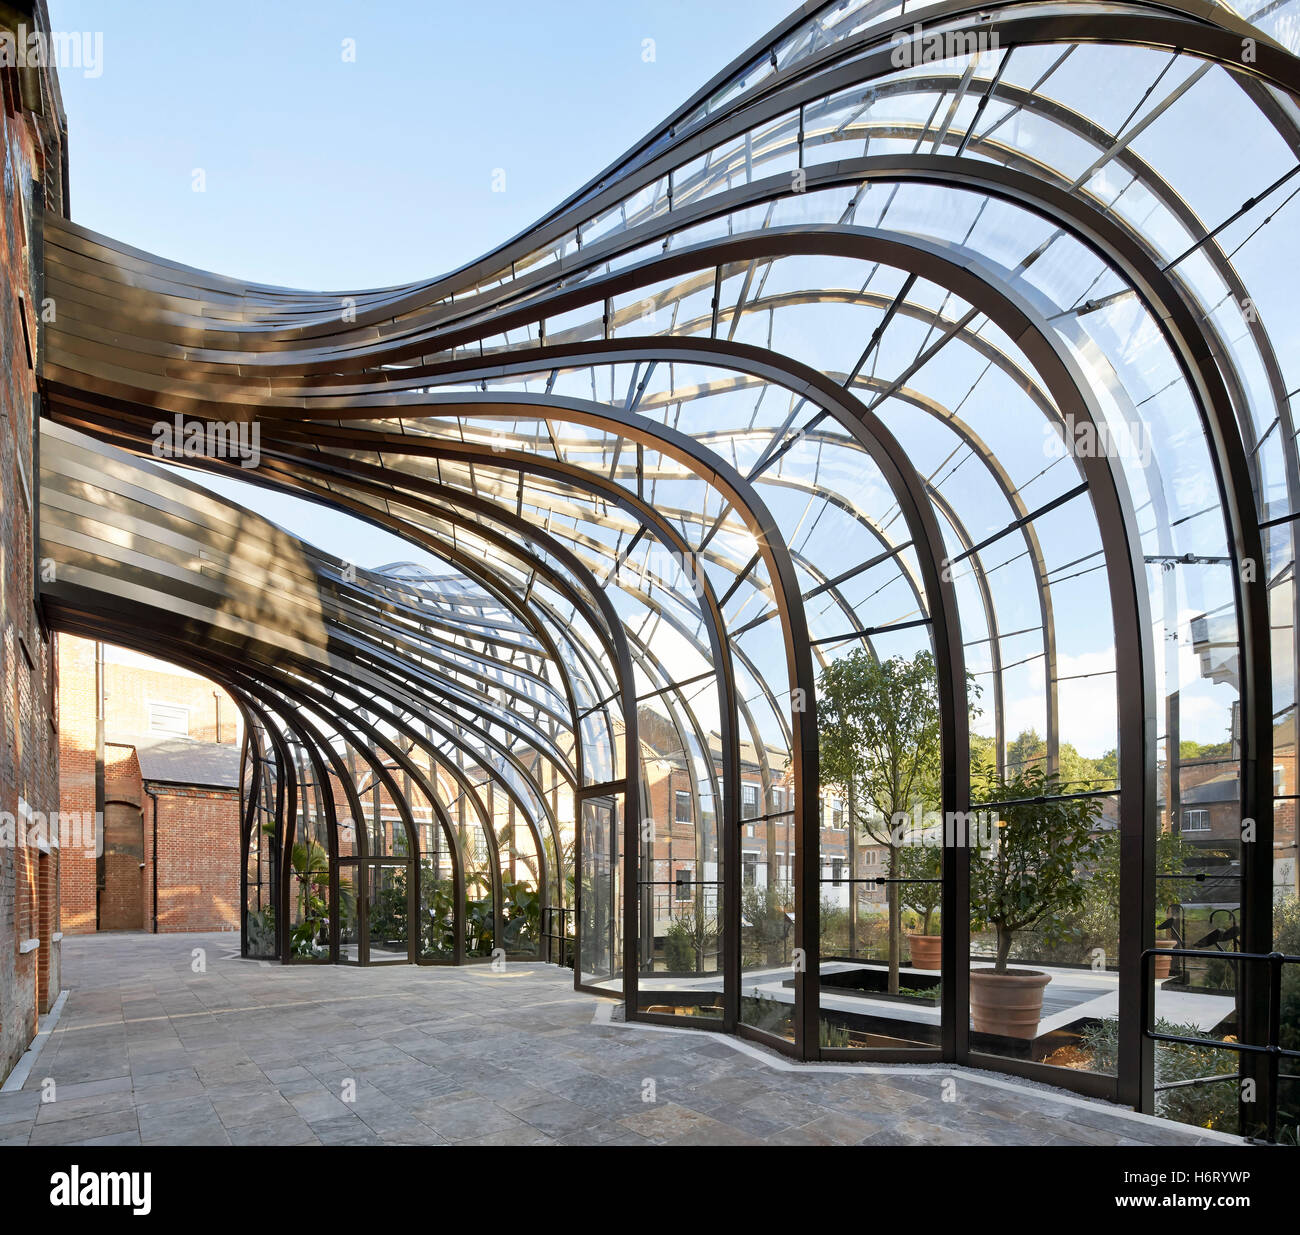 Curved greenhouse structures forming archway bombay for Architectural greenhouse